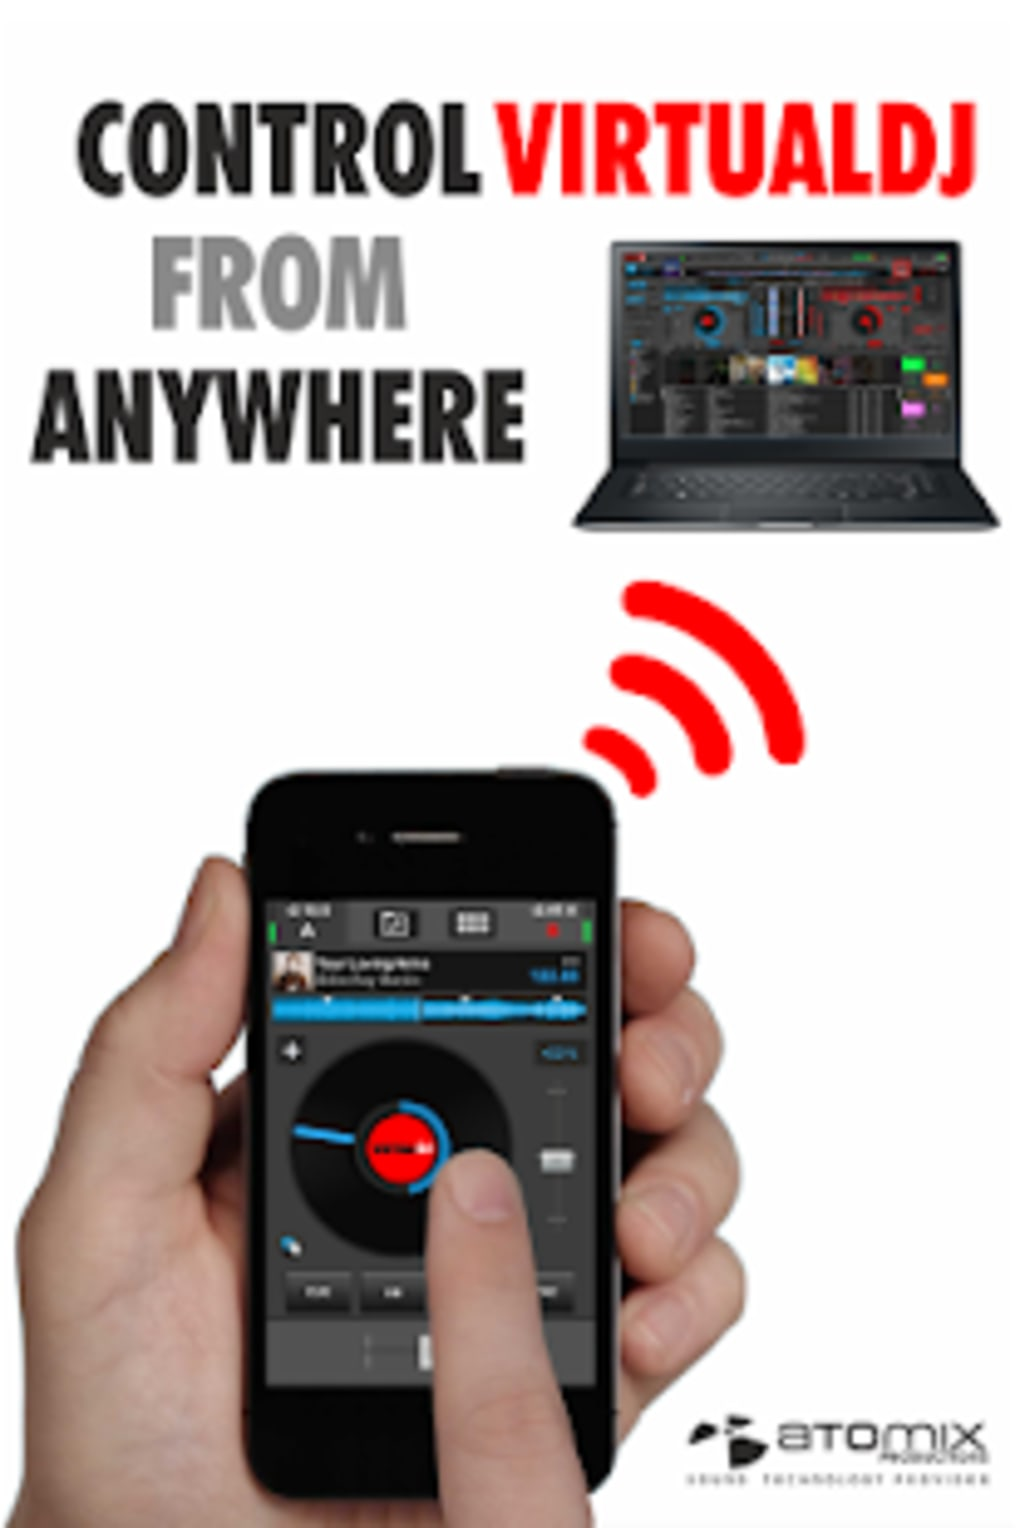 VirtualDJ Remote for Android - Download